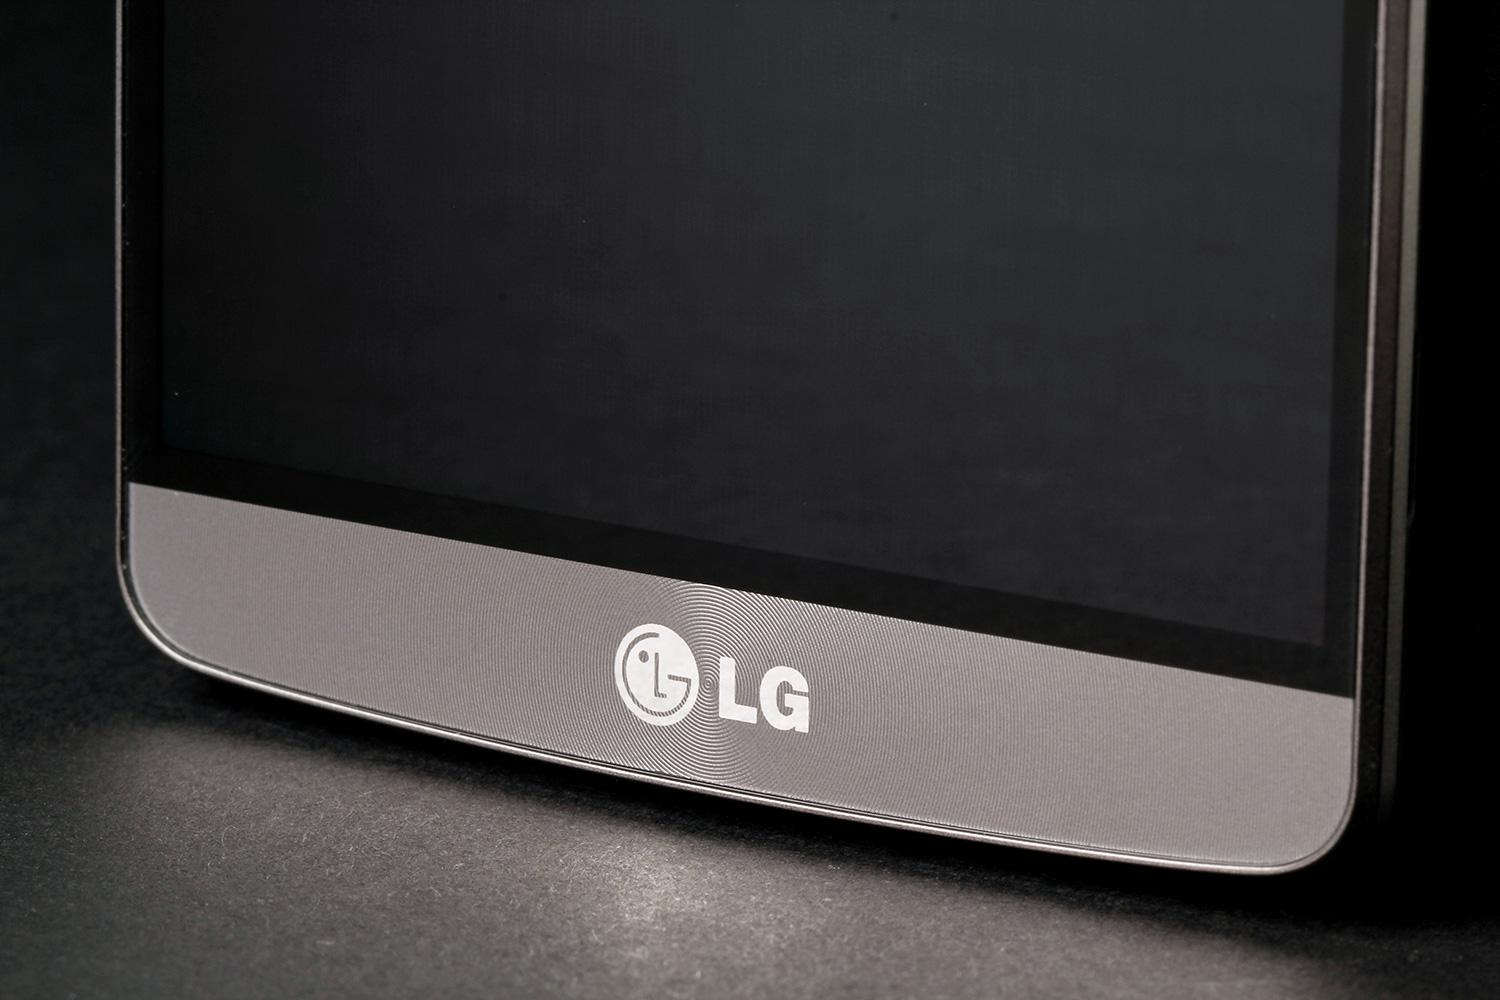 LG G4 Note- Specification, Rumors And Launch Date